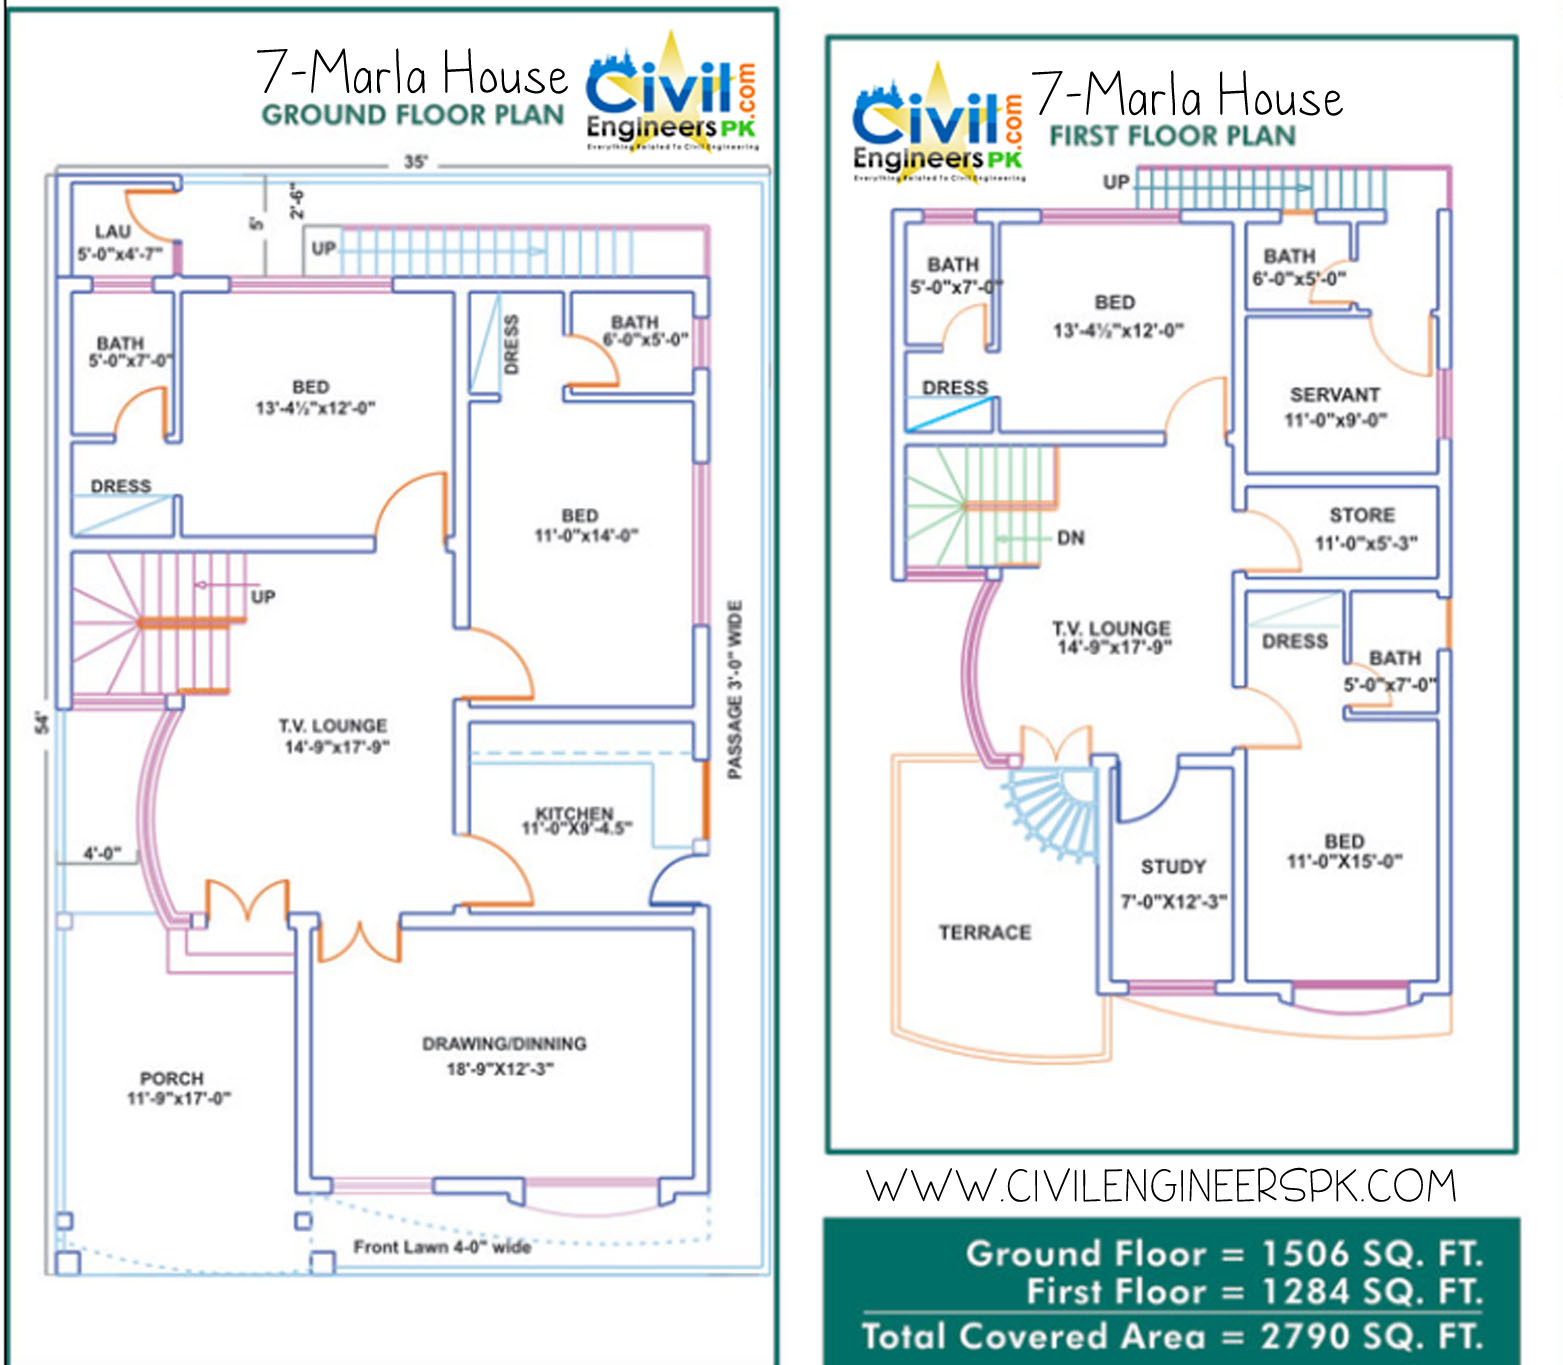 7 marla house plans civil engineers pk House layout design